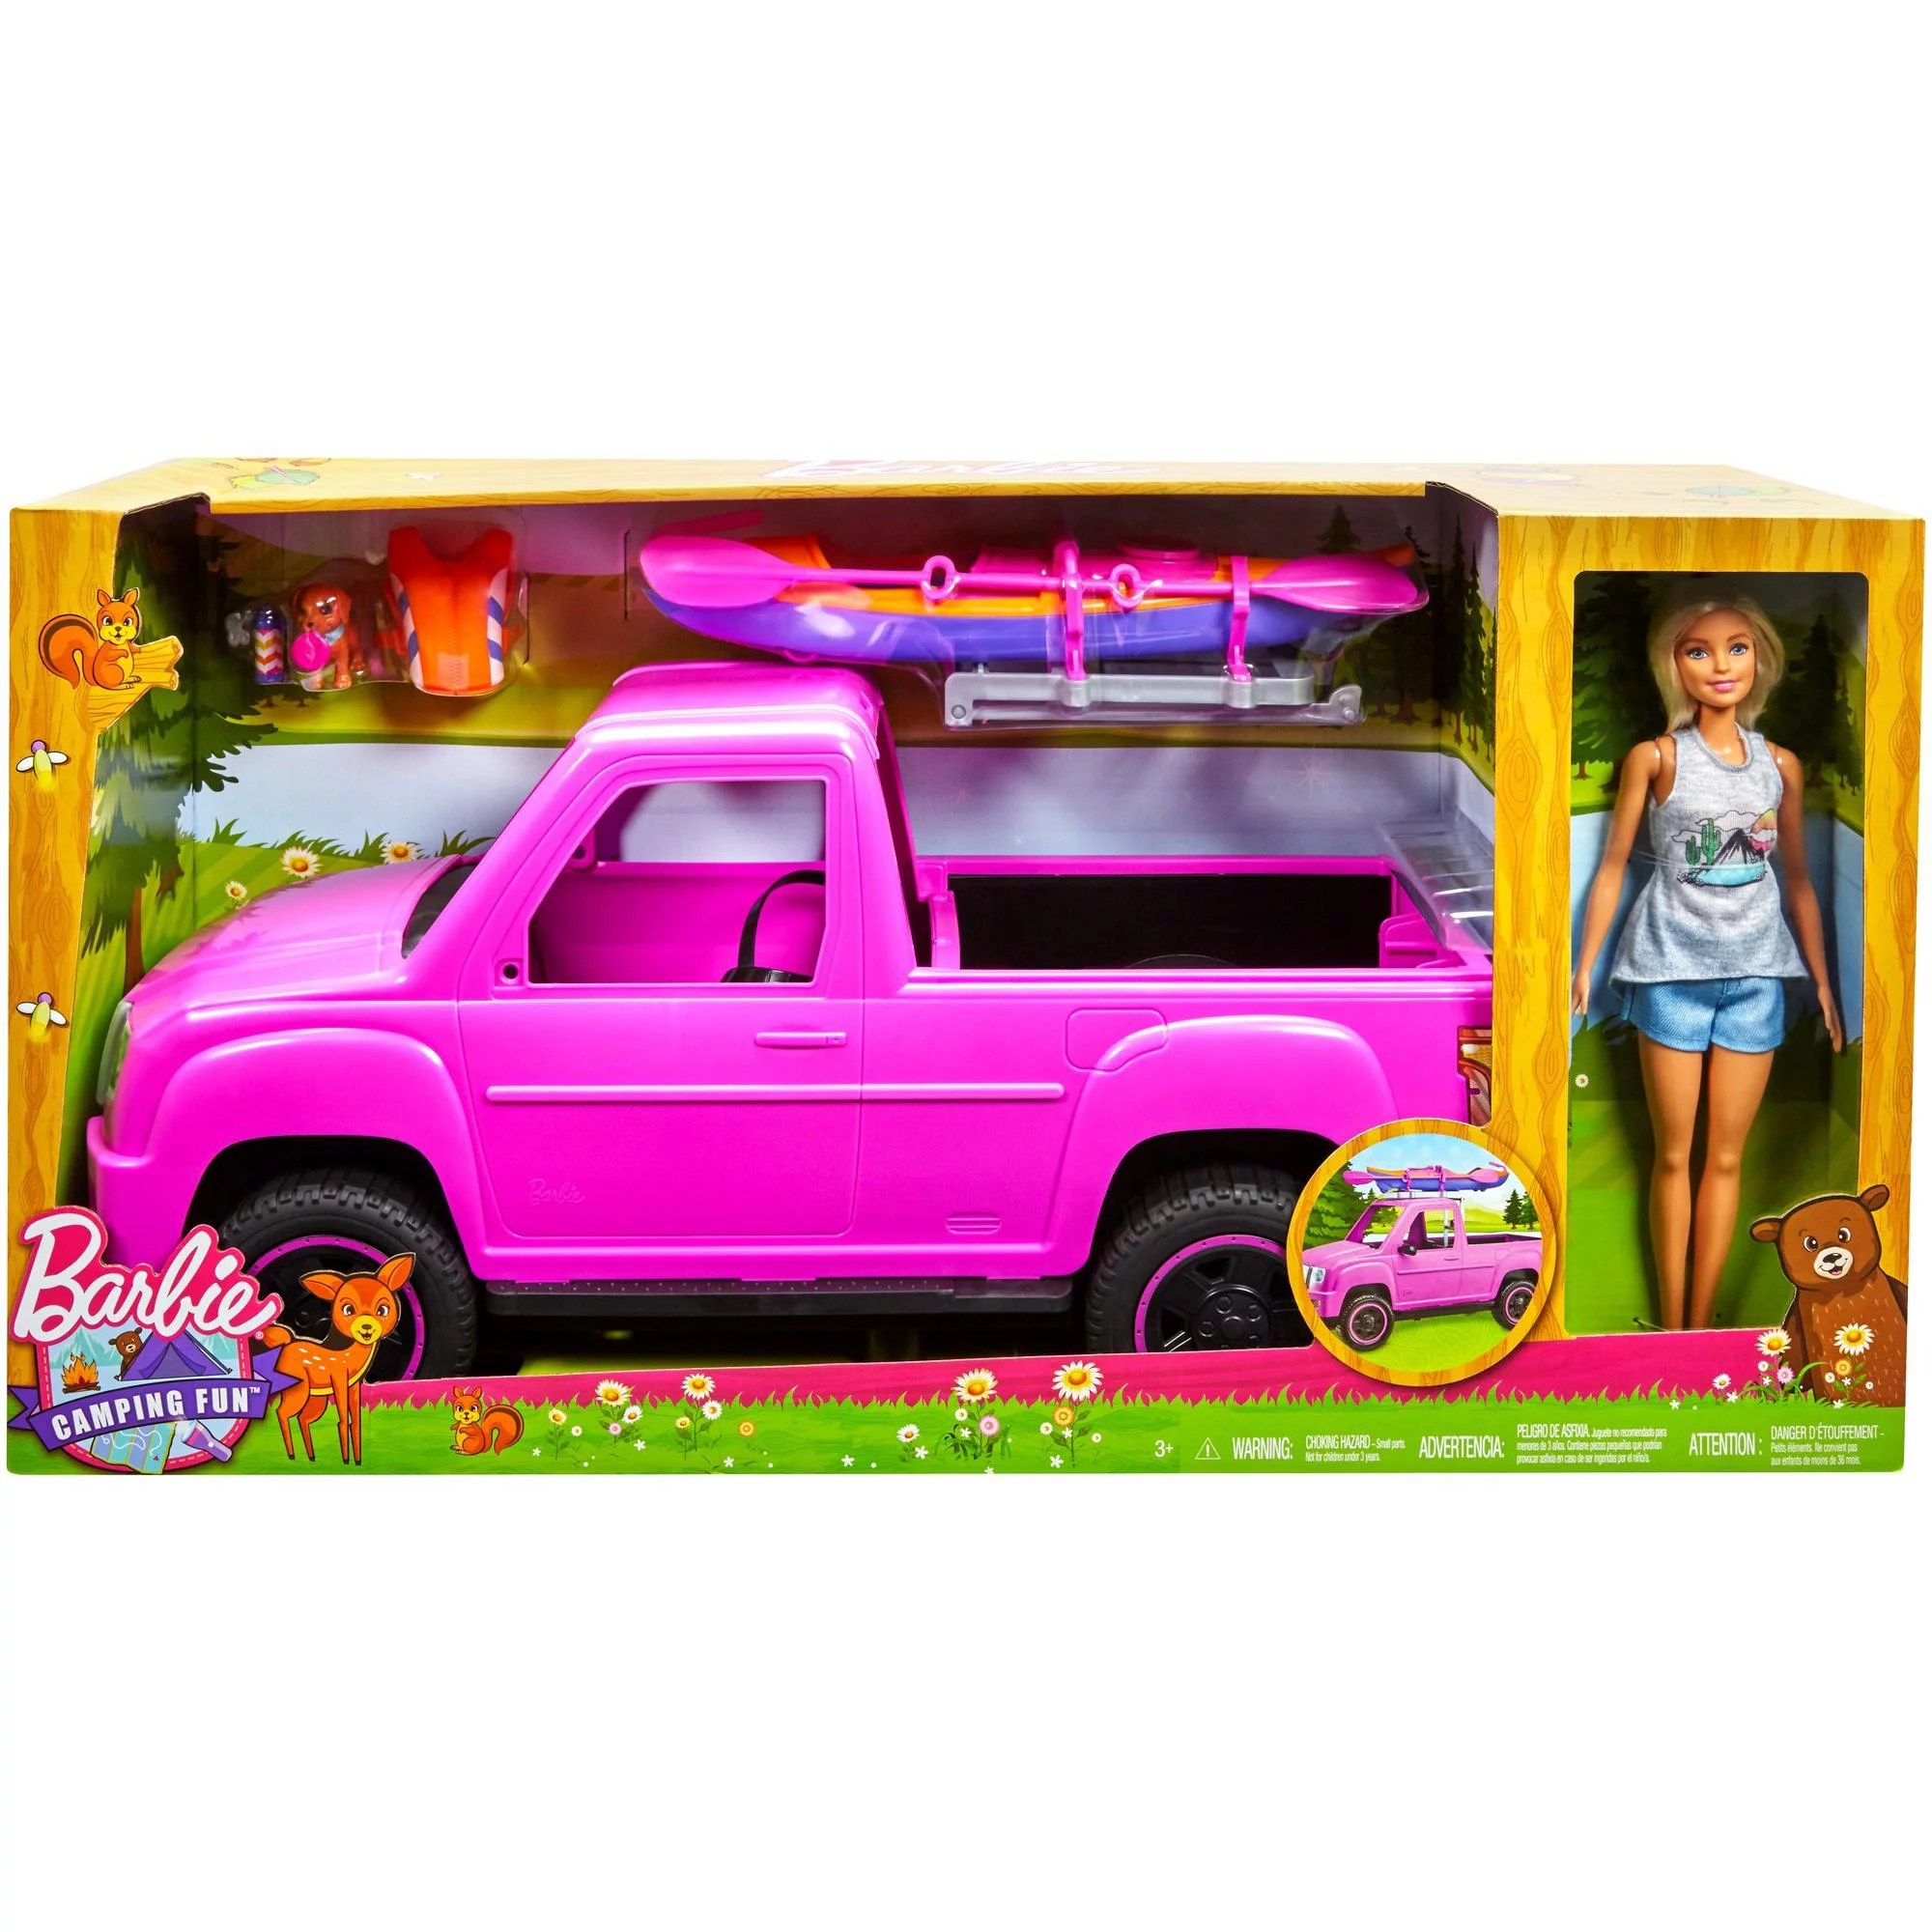 hight resolution of barbie camping fun doll pink truck and sea kayak adventure playset walmart com